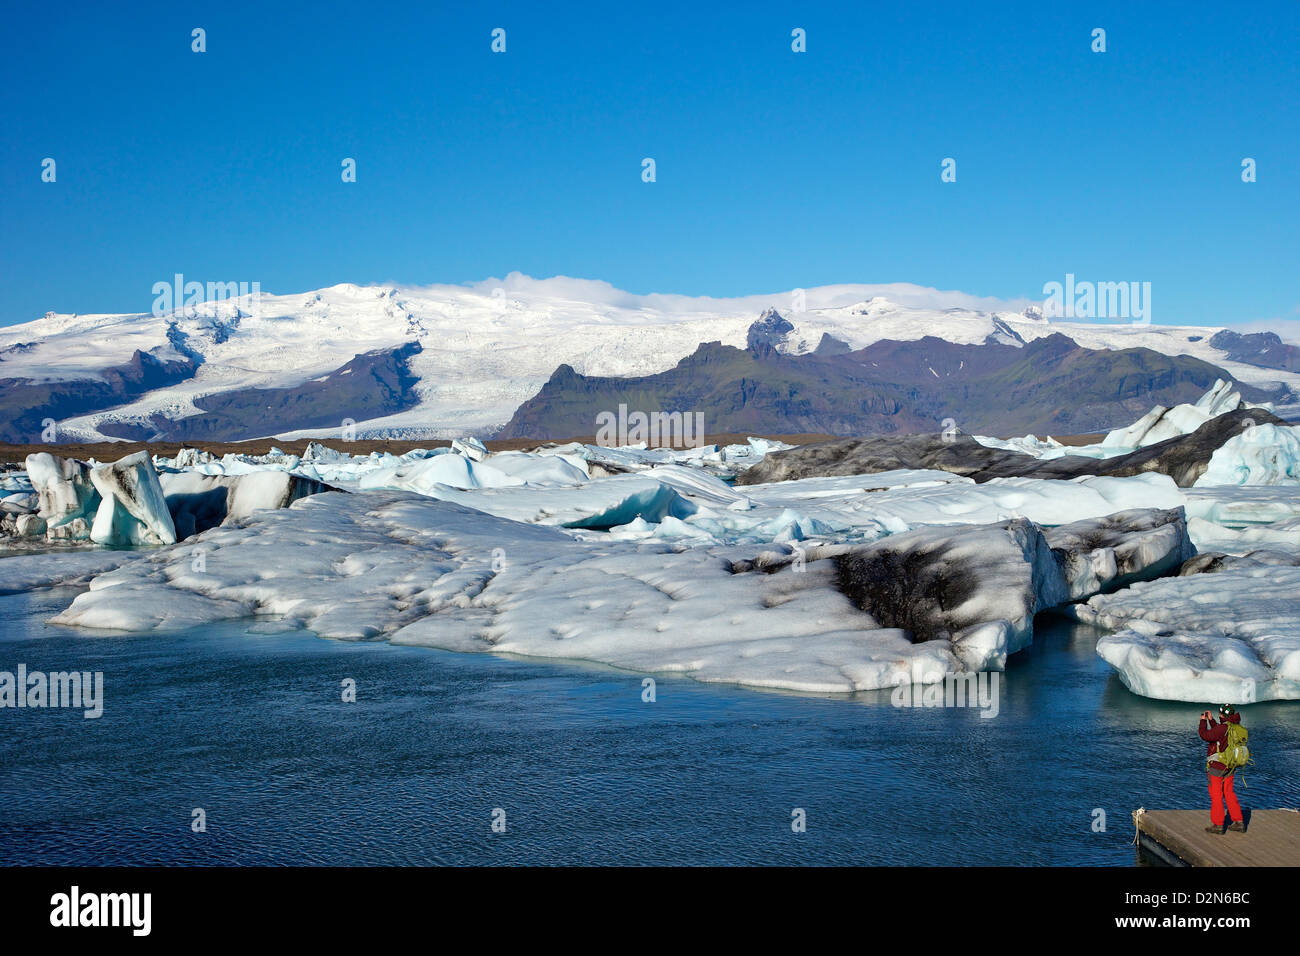 Man taking photo of icebergs on the glacial lake at Jokulsarlon icecap of Vatnajokull behind, Iceland, Polar Regions - Stock Image